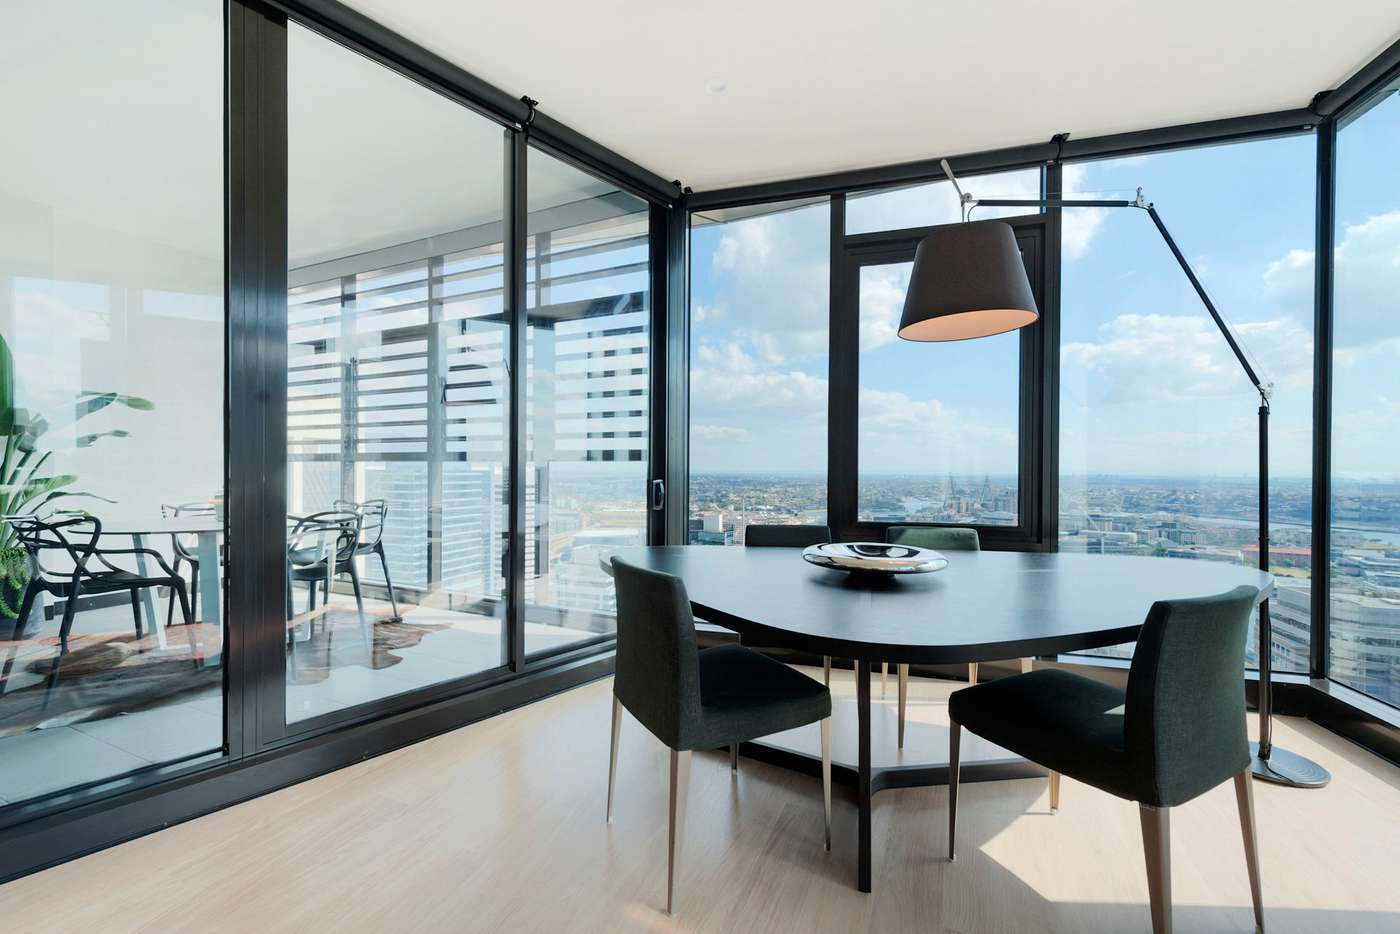 Fifth view of Homely apartment listing, 3302/38 York Street, Sydney NSW 2000